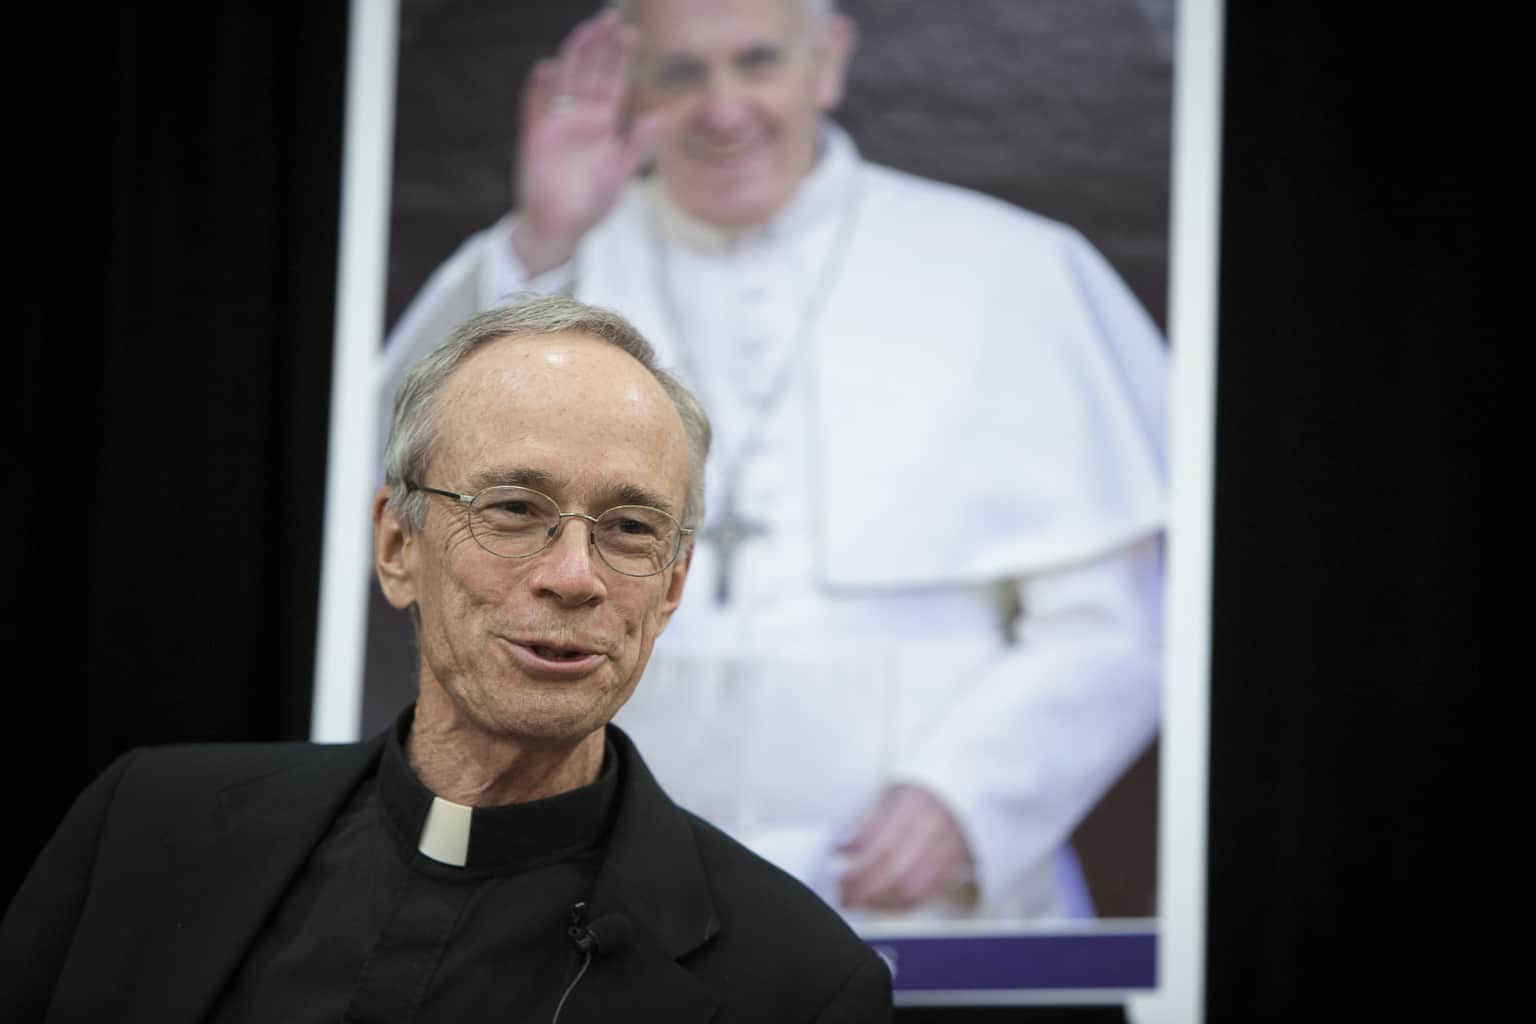 Tom Reese, SJ on the Amazon Synod: An Interview